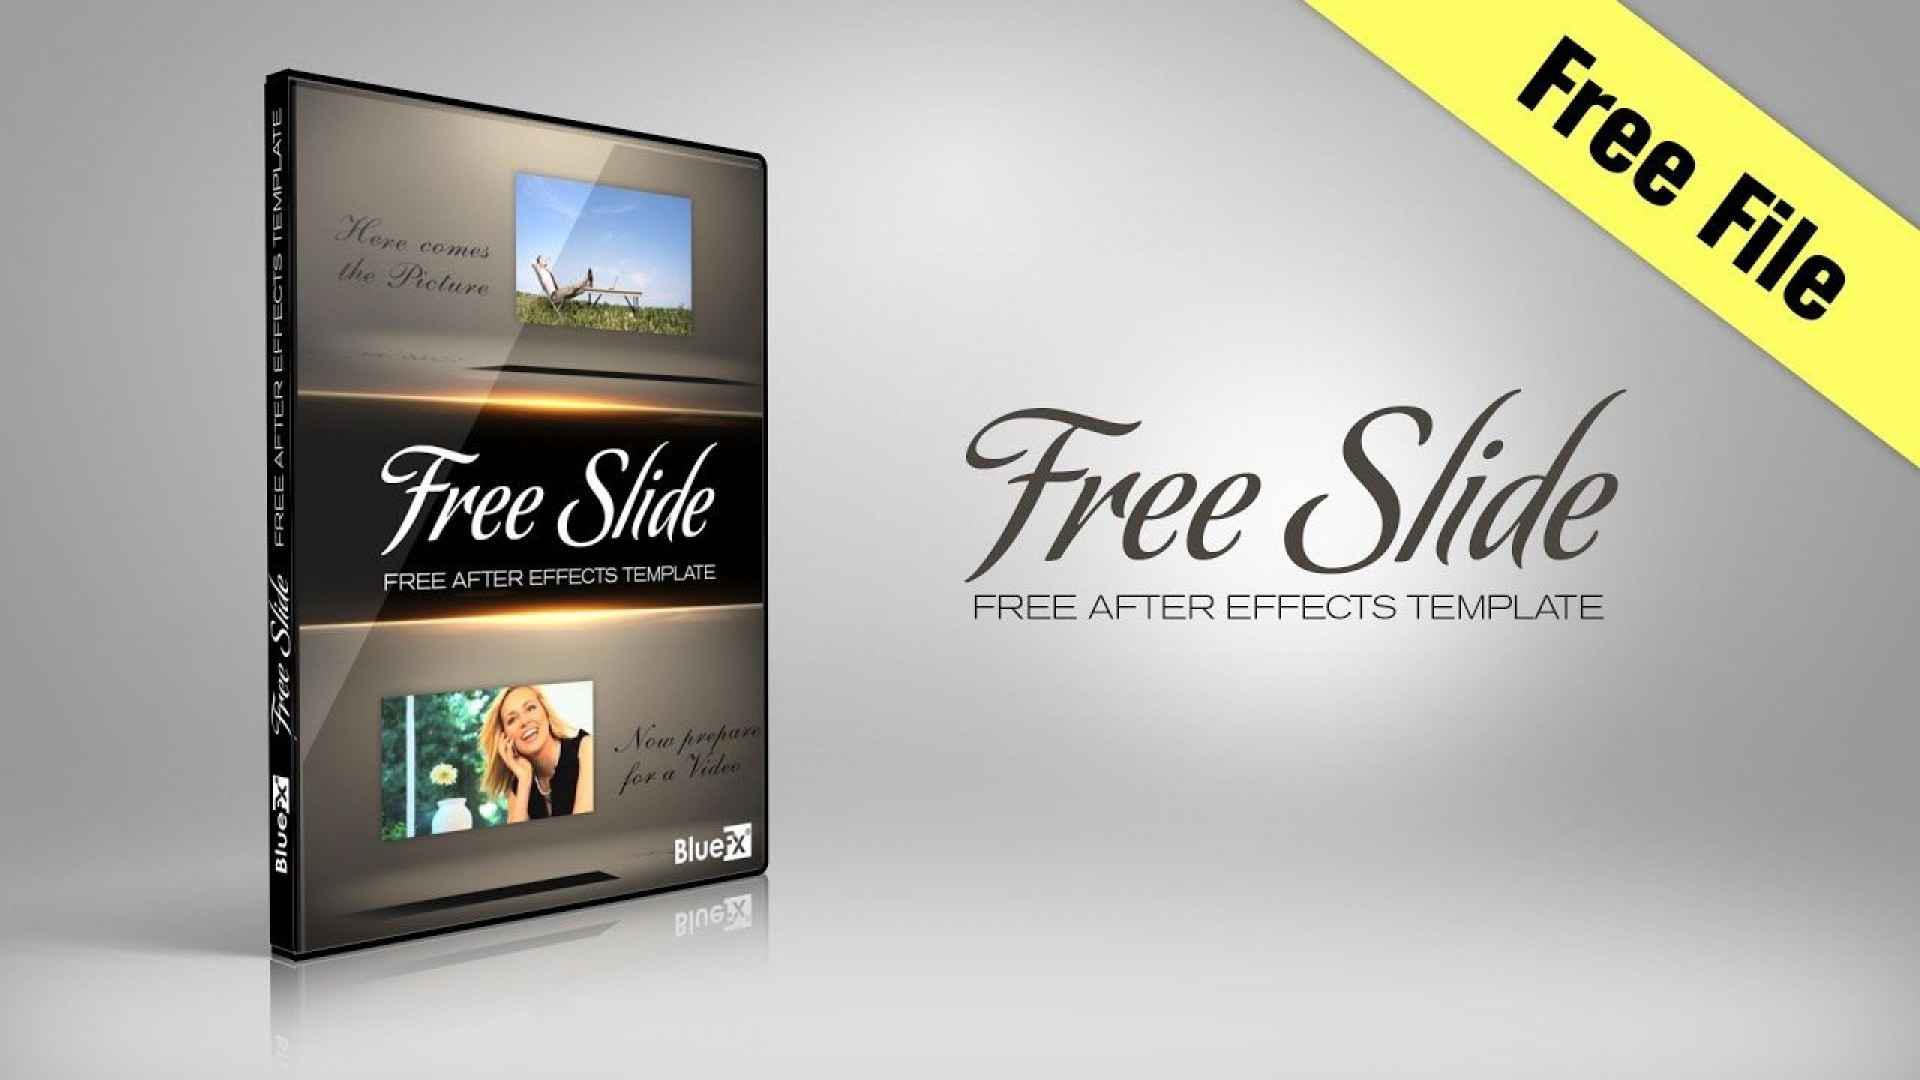 006 Breathtaking After Effect Video Template Highest Quality  Templates Intro Free Download Cs5 Clip1920